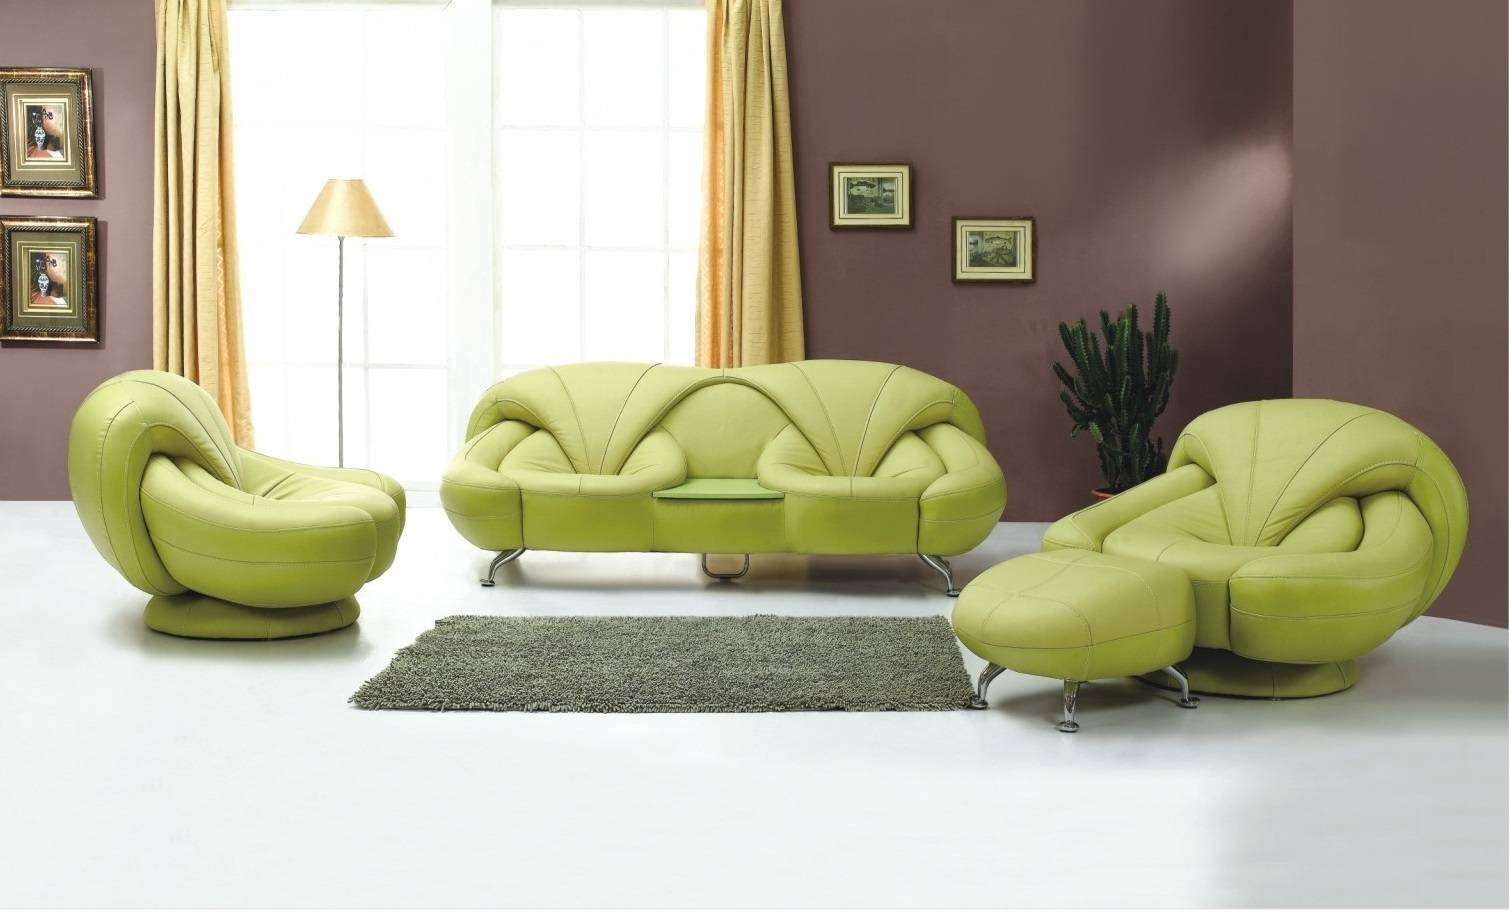 Finding Stylish Furniture As Living Room Chairs - Amaza Design throughout Green Sofa Chairs (Image 15 of 30)